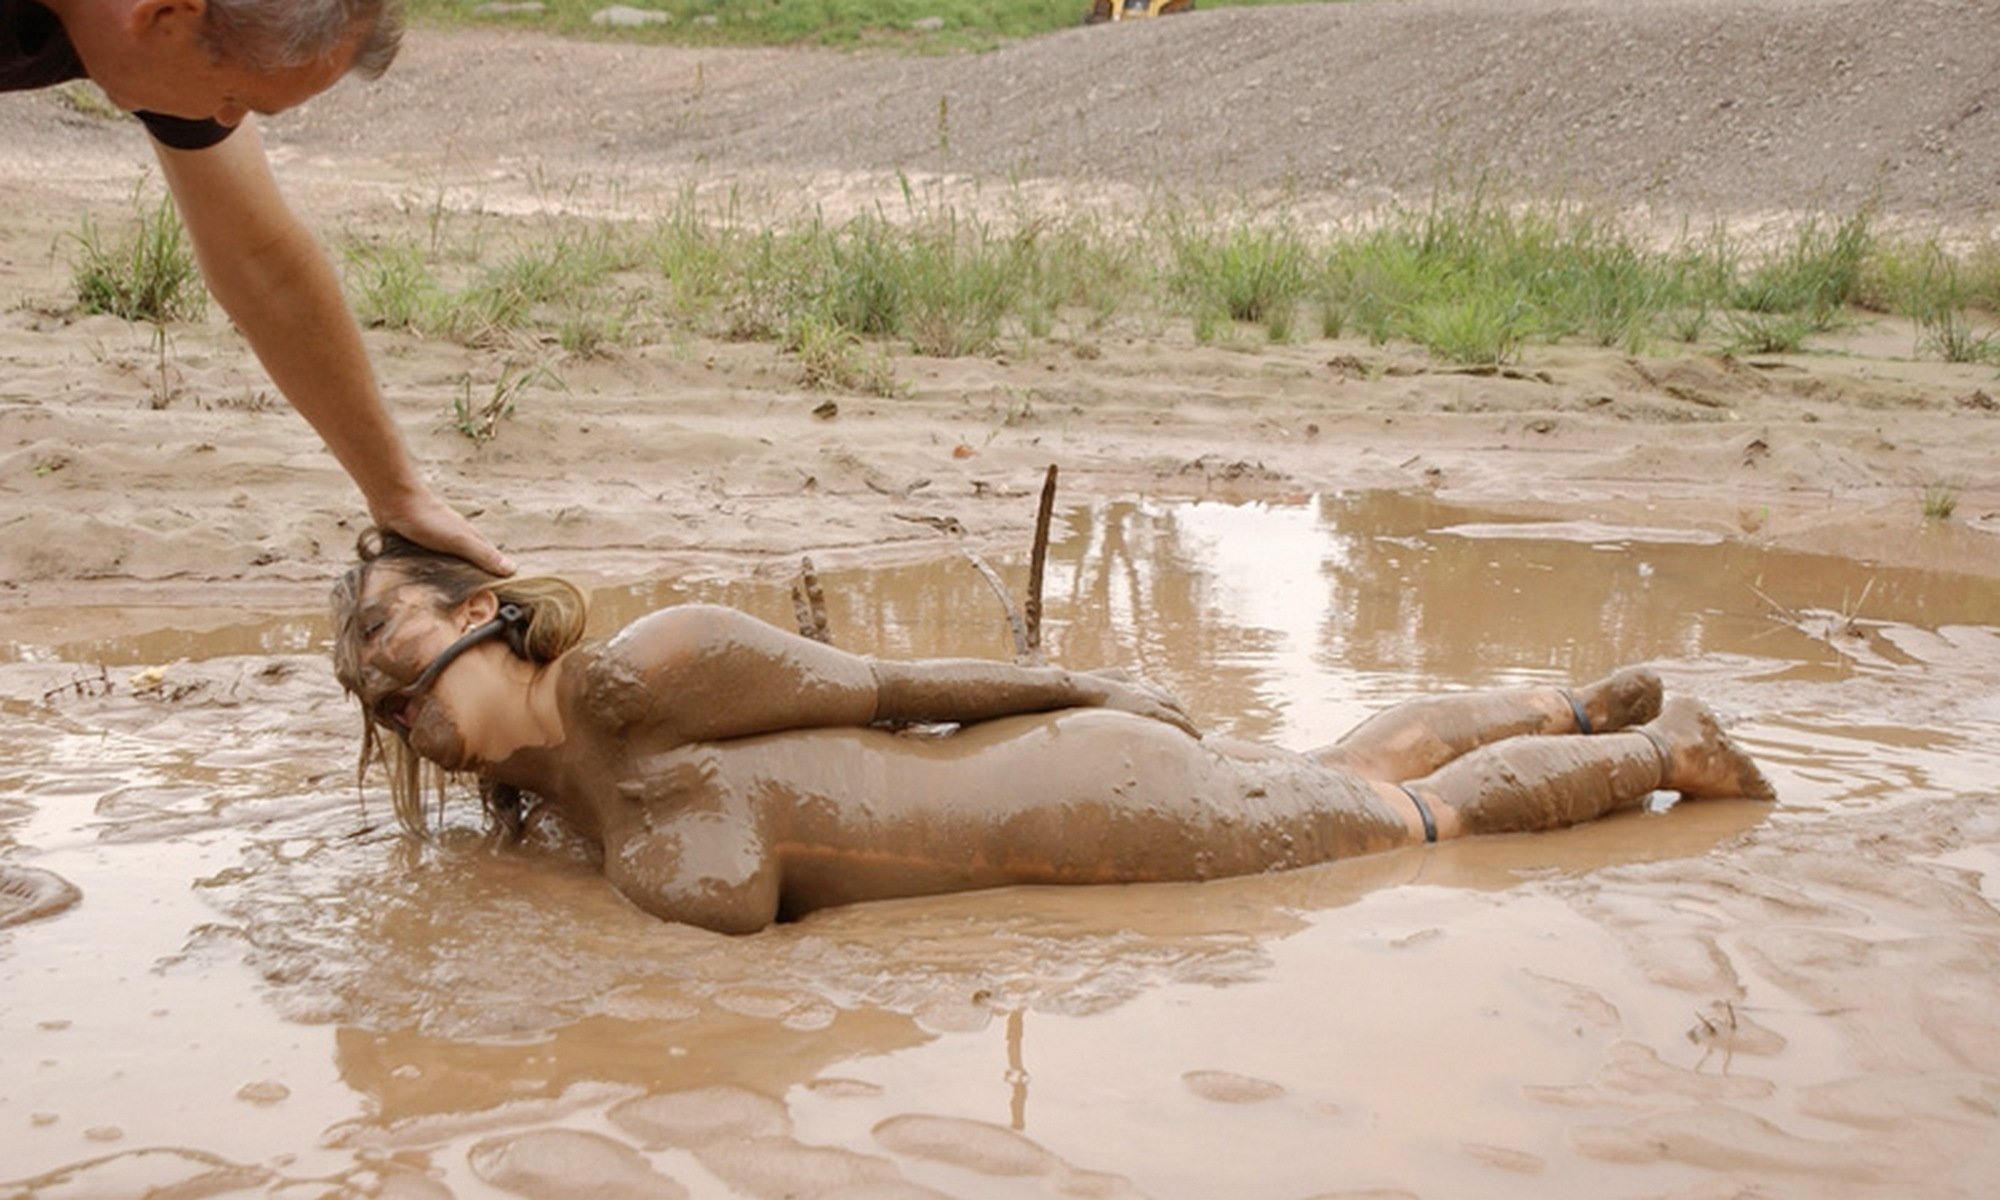 Sexy nude girl s playing in mud xxx